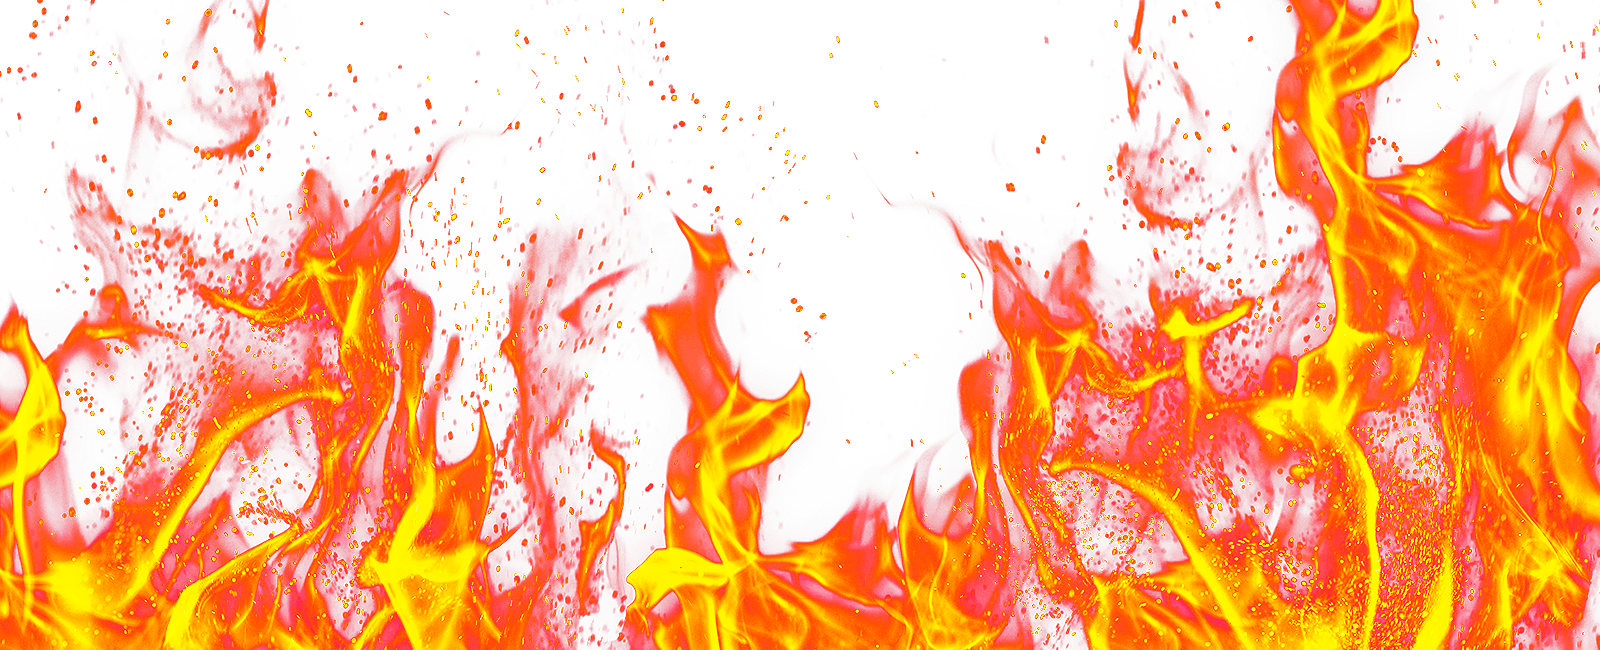 Fire Image PNG Image